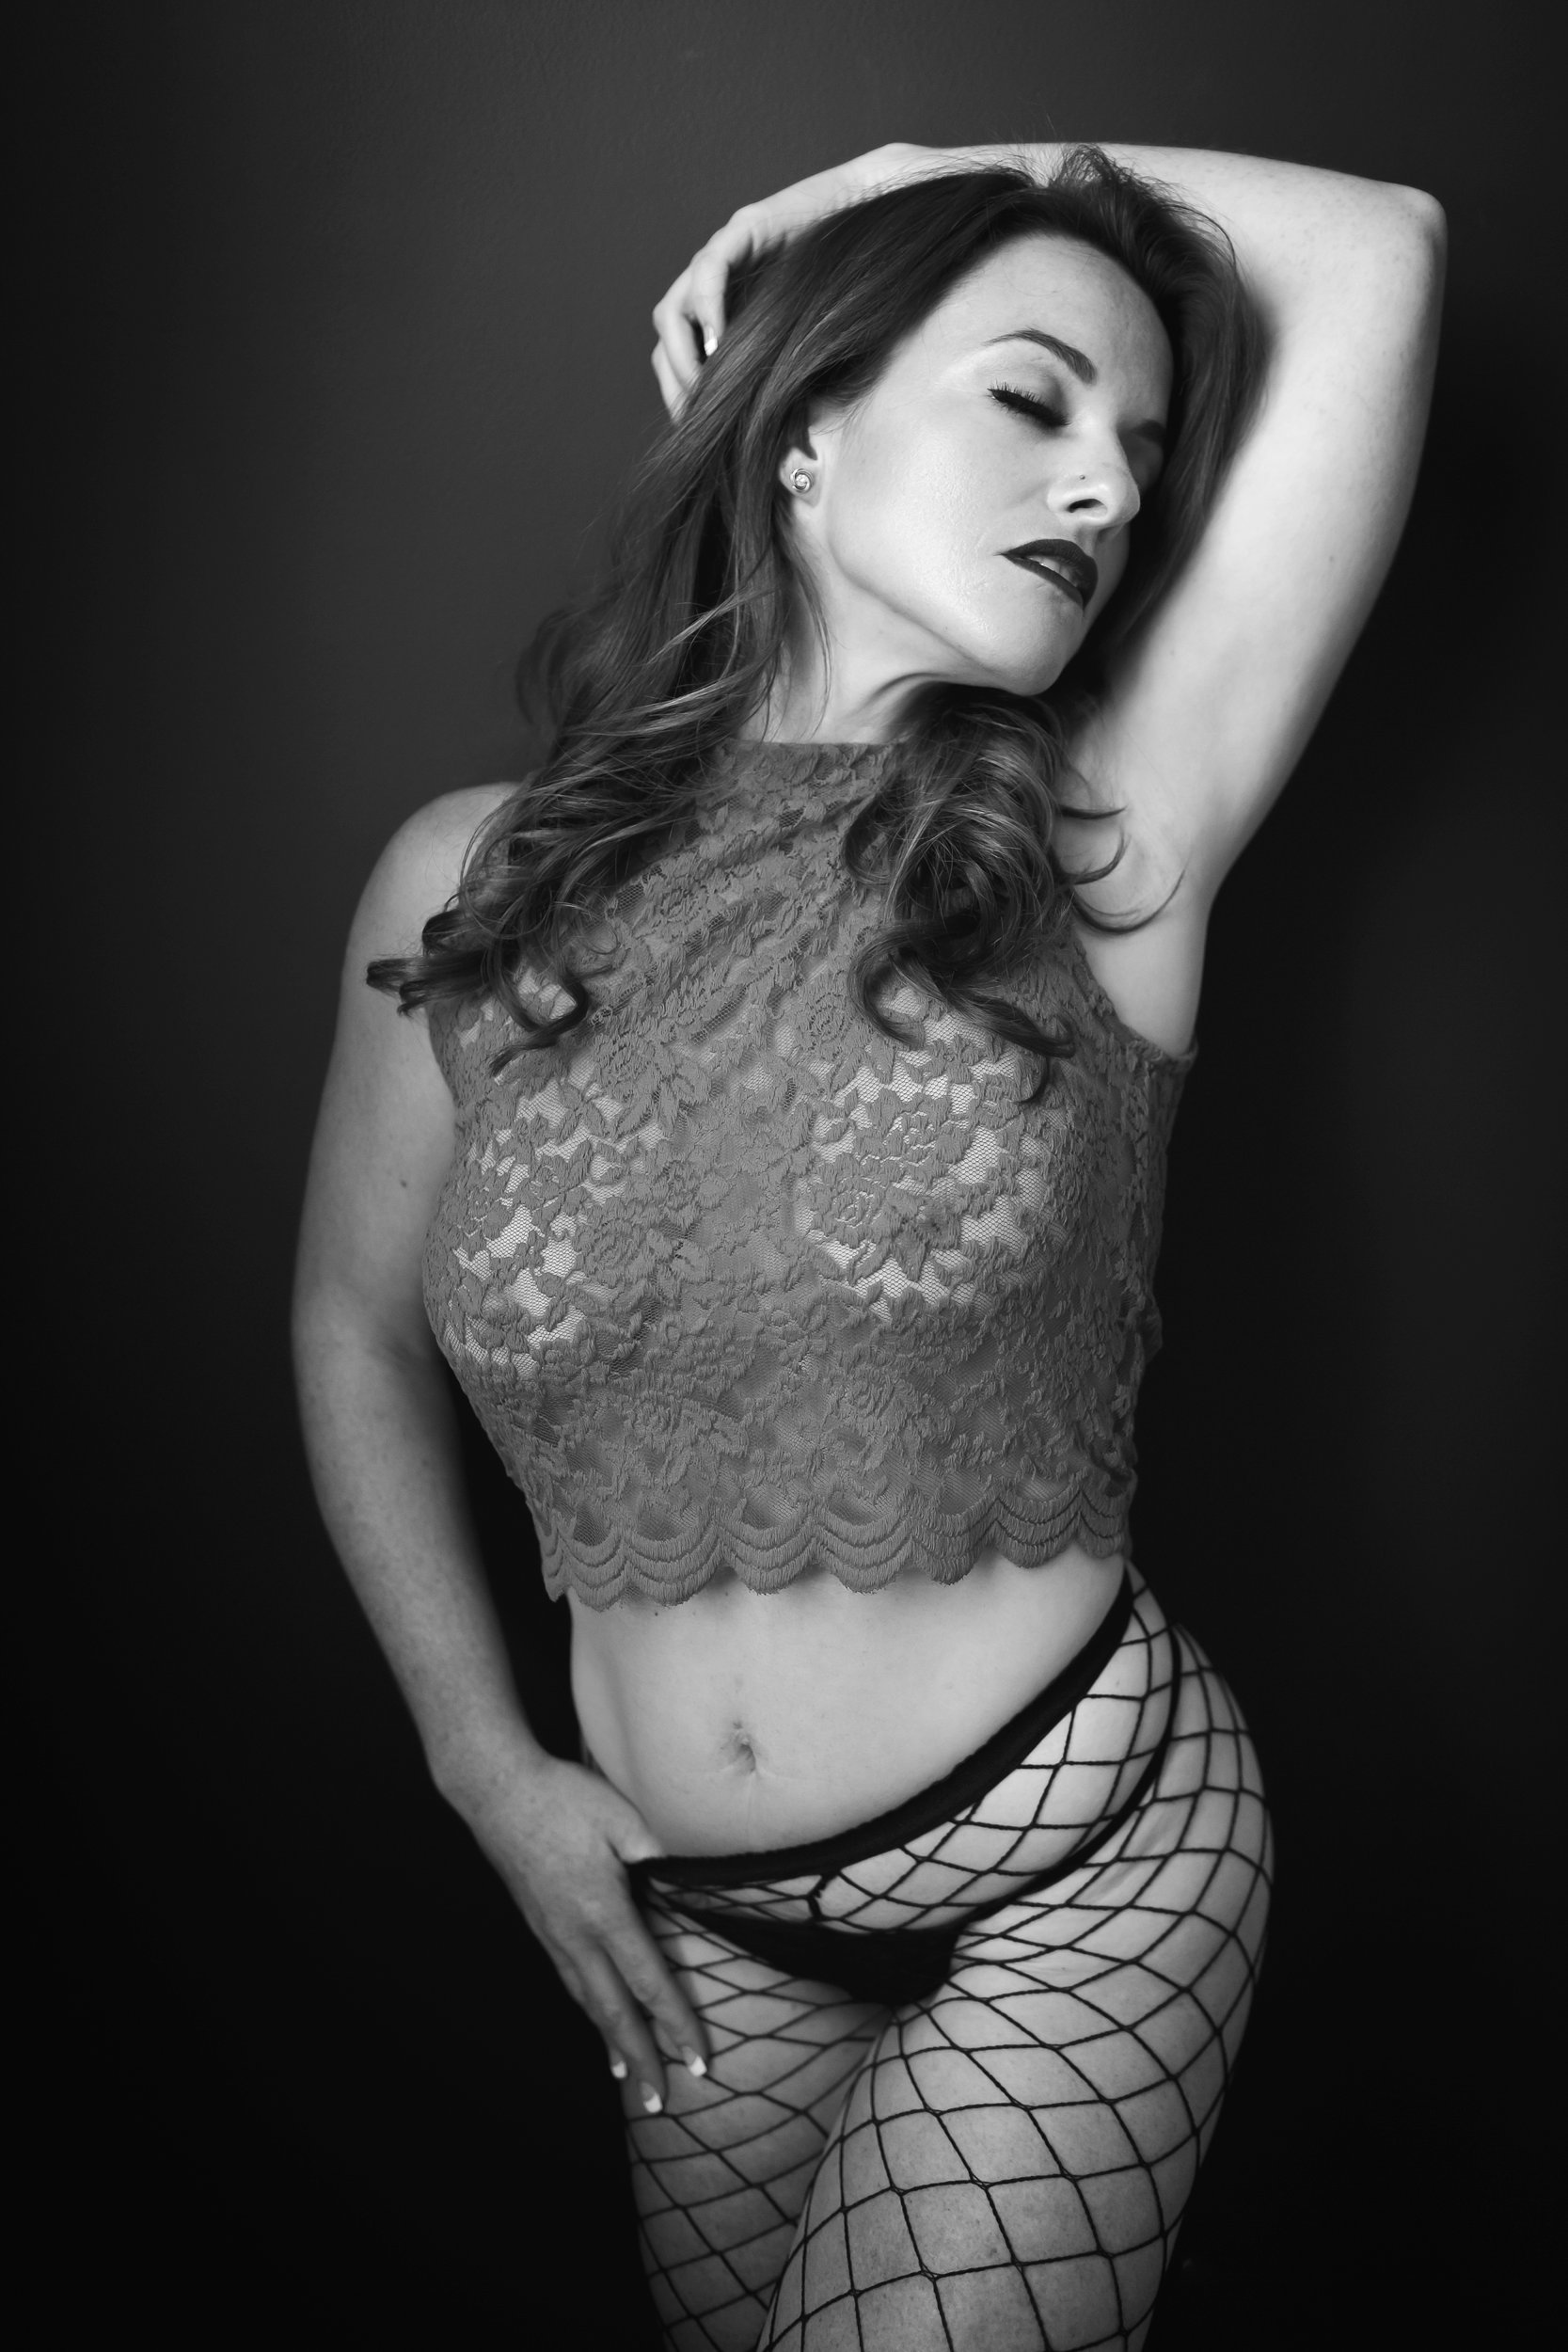 Black and white photo of woman in lace top and fishnet stockings